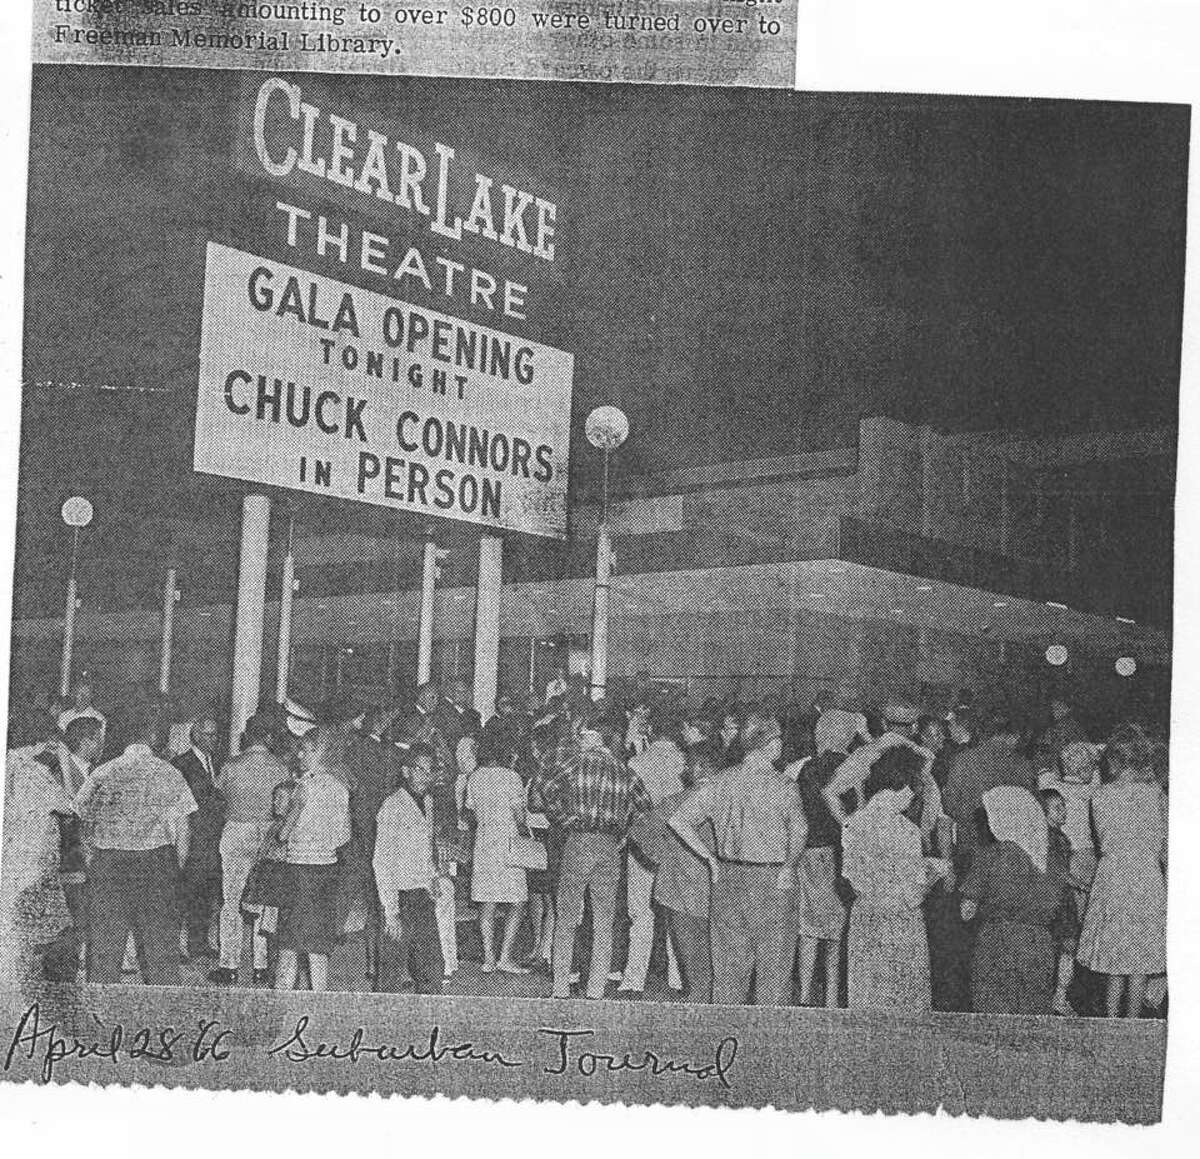 The scene at the opening of the Clear Lake Theatre where the time capsule was placed.